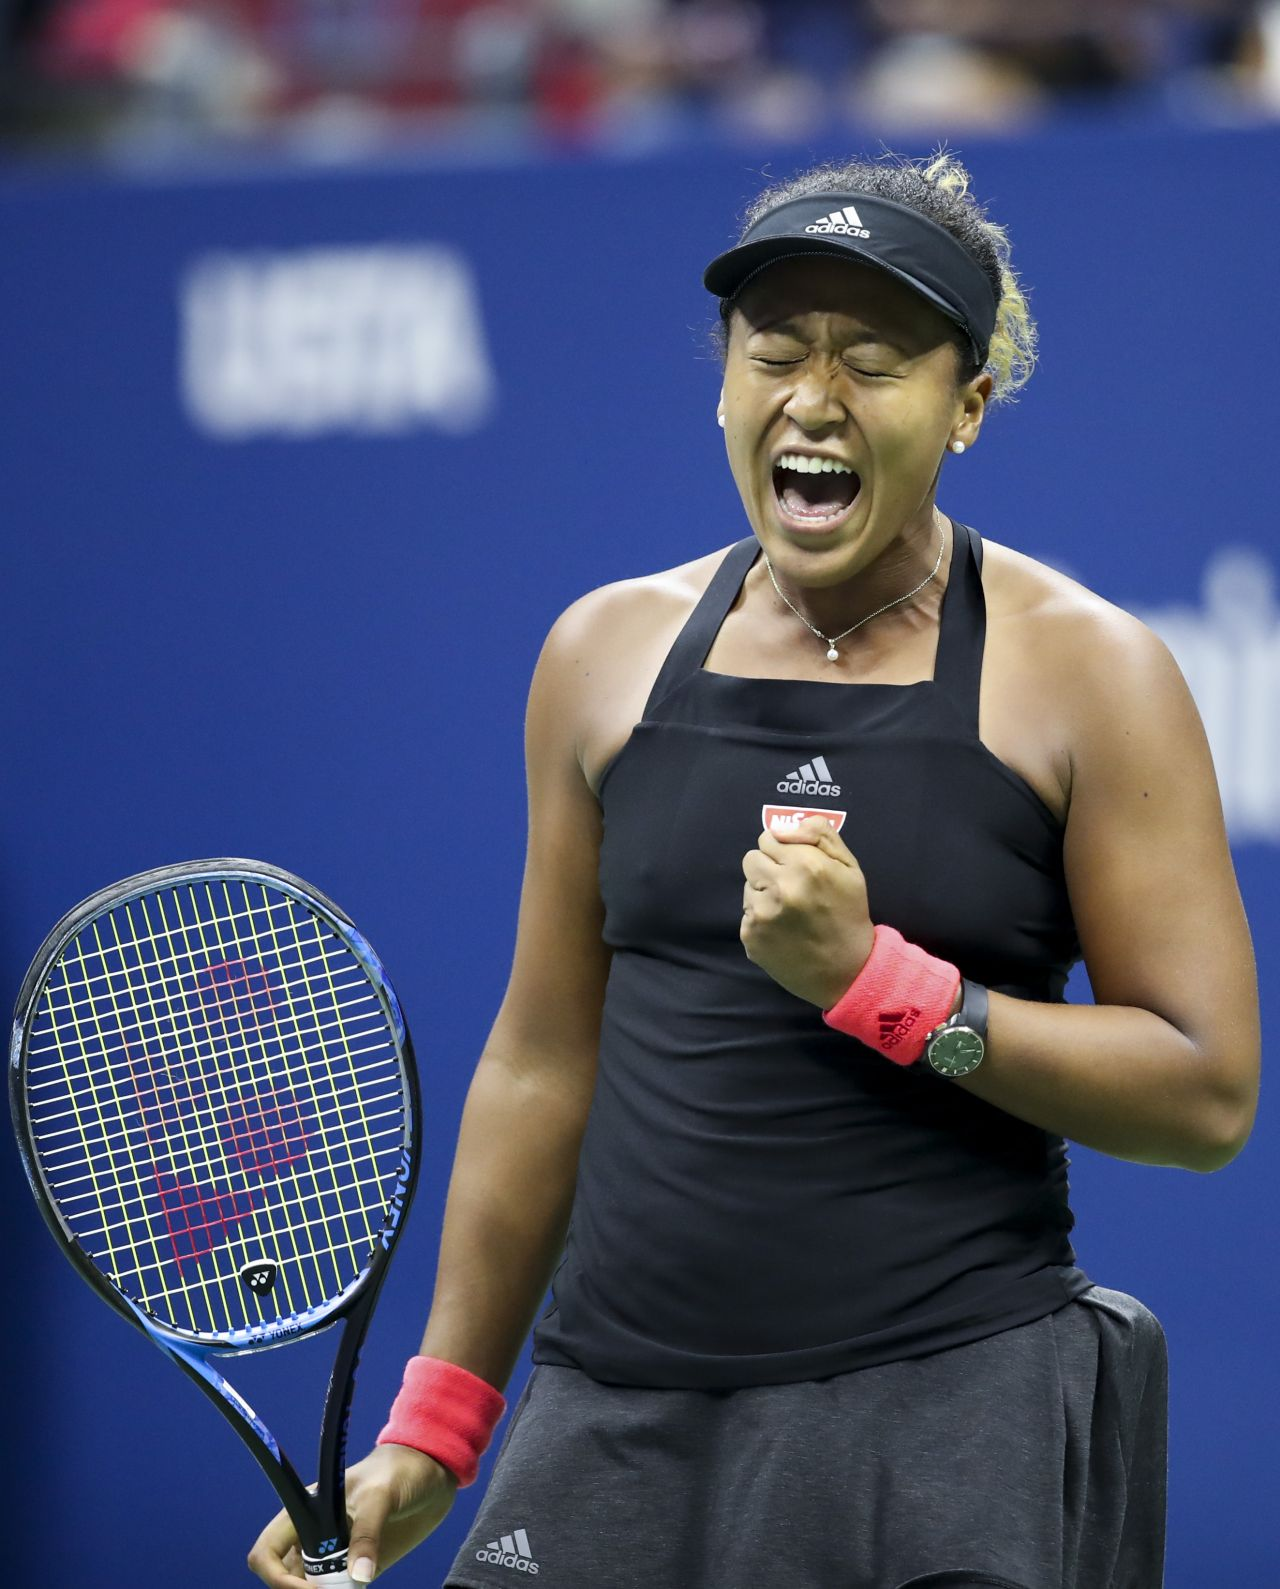 Image Gallery Naomi Duo 2019 07 08: Final Match At The 2018 US Open